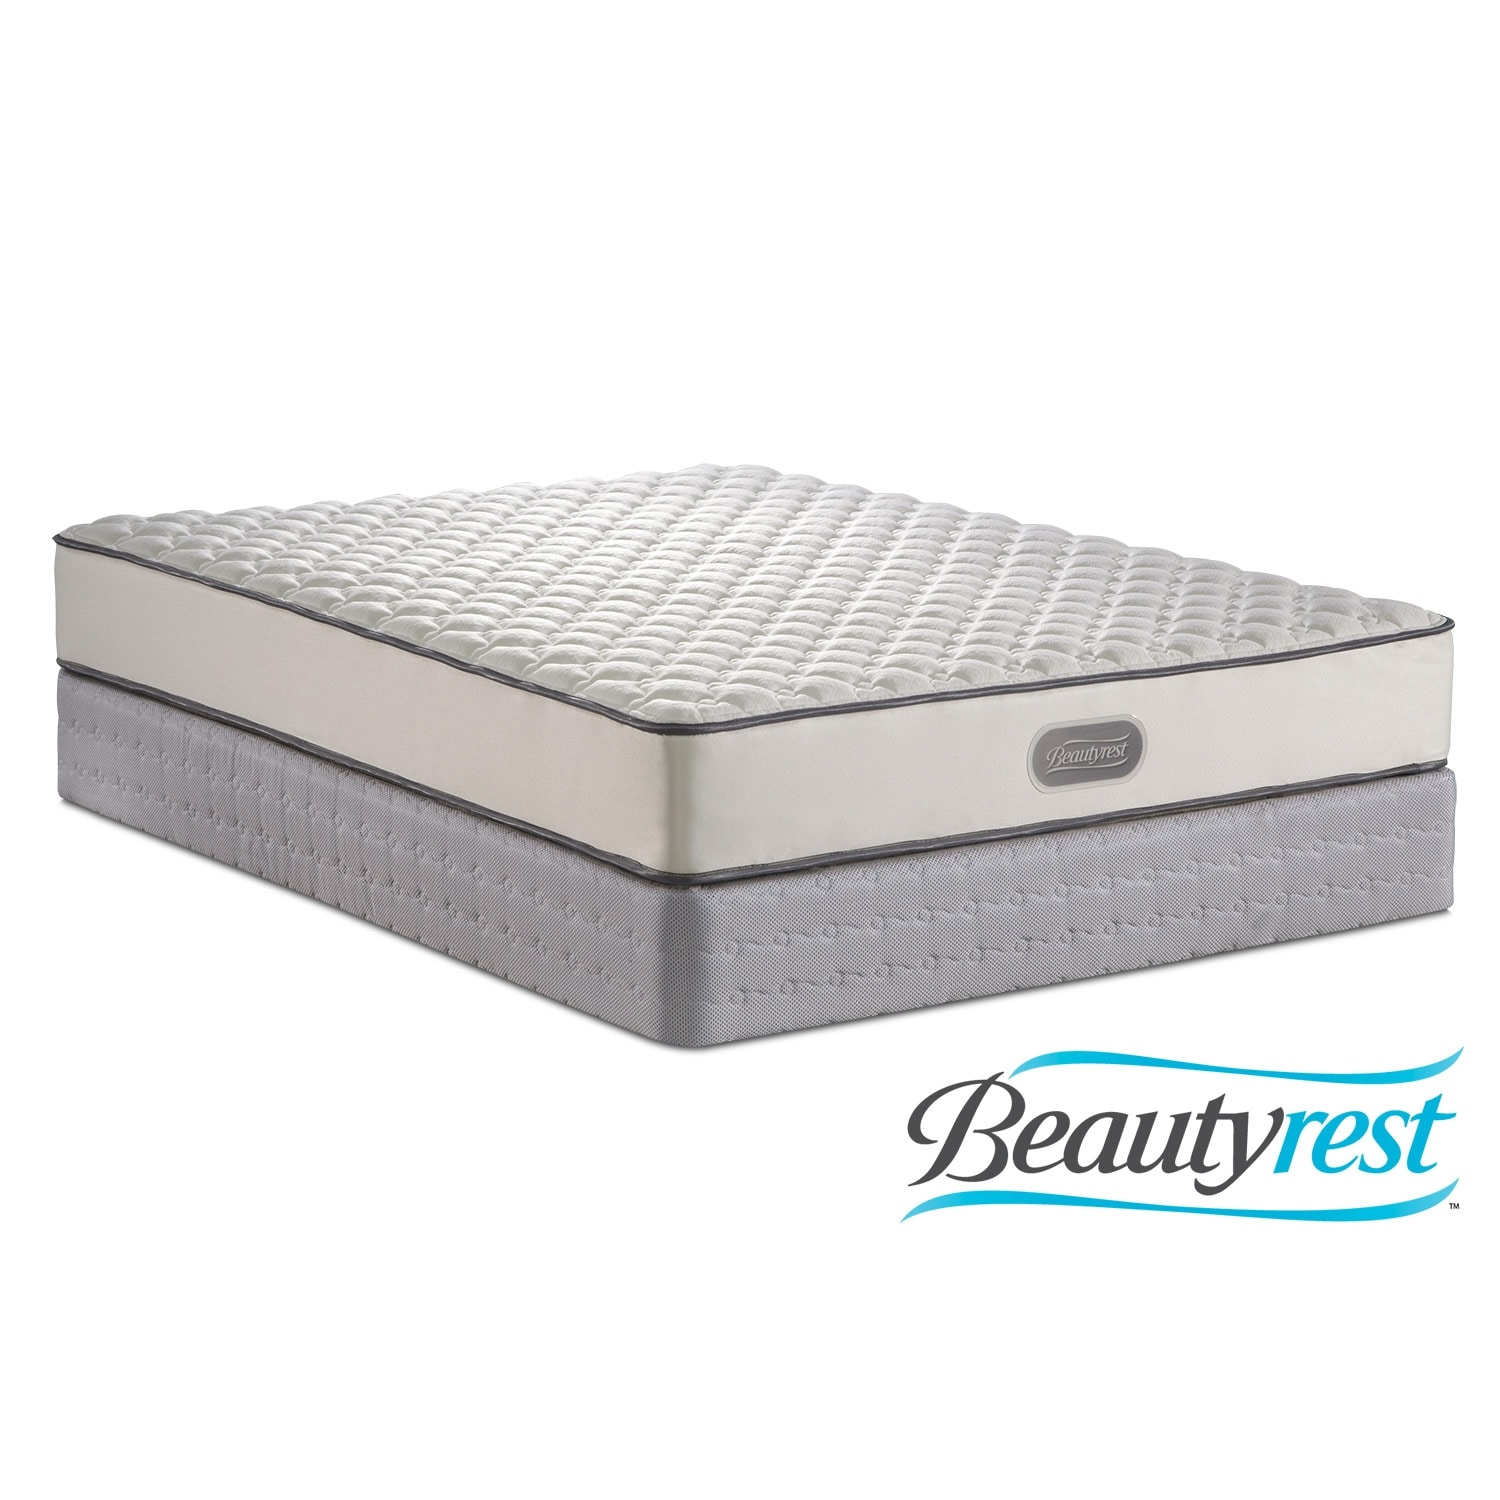 Mattresses and Bedding - Fox Hills Twin XL Mattress/Foundation Set